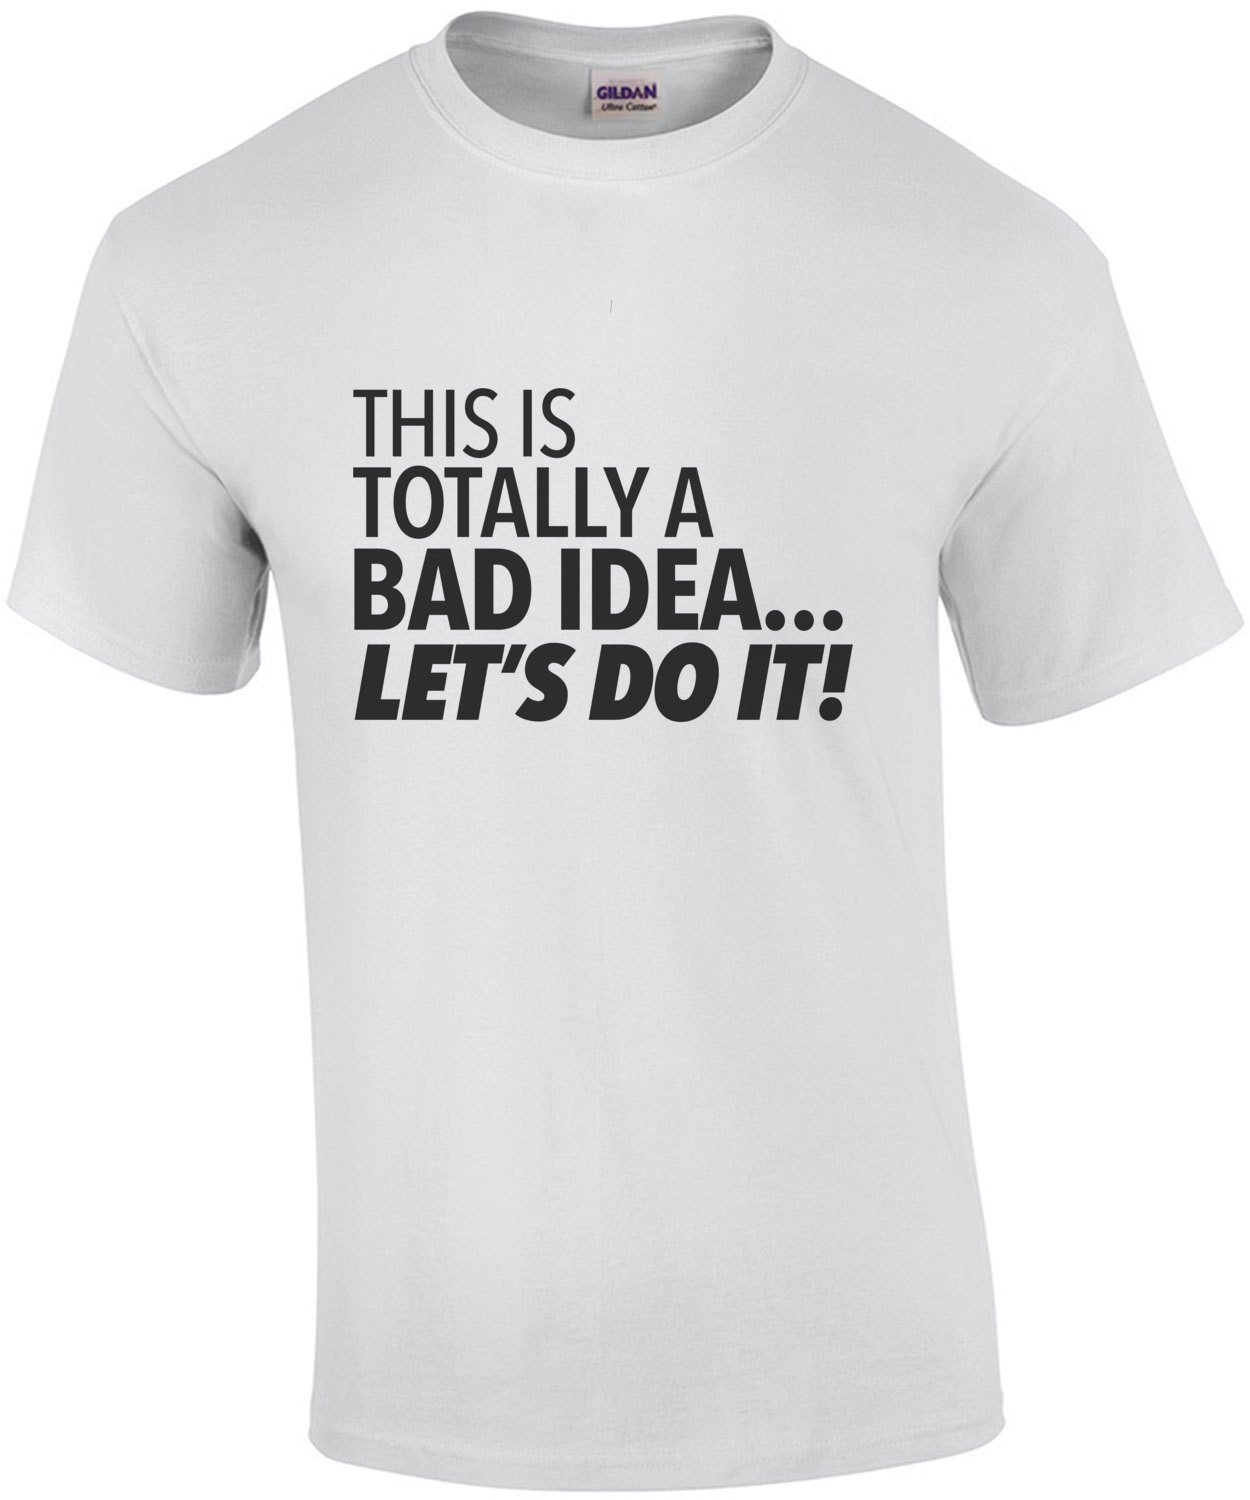 This is totally a bad idea... Let's do it! Sarcastic T-Shirt